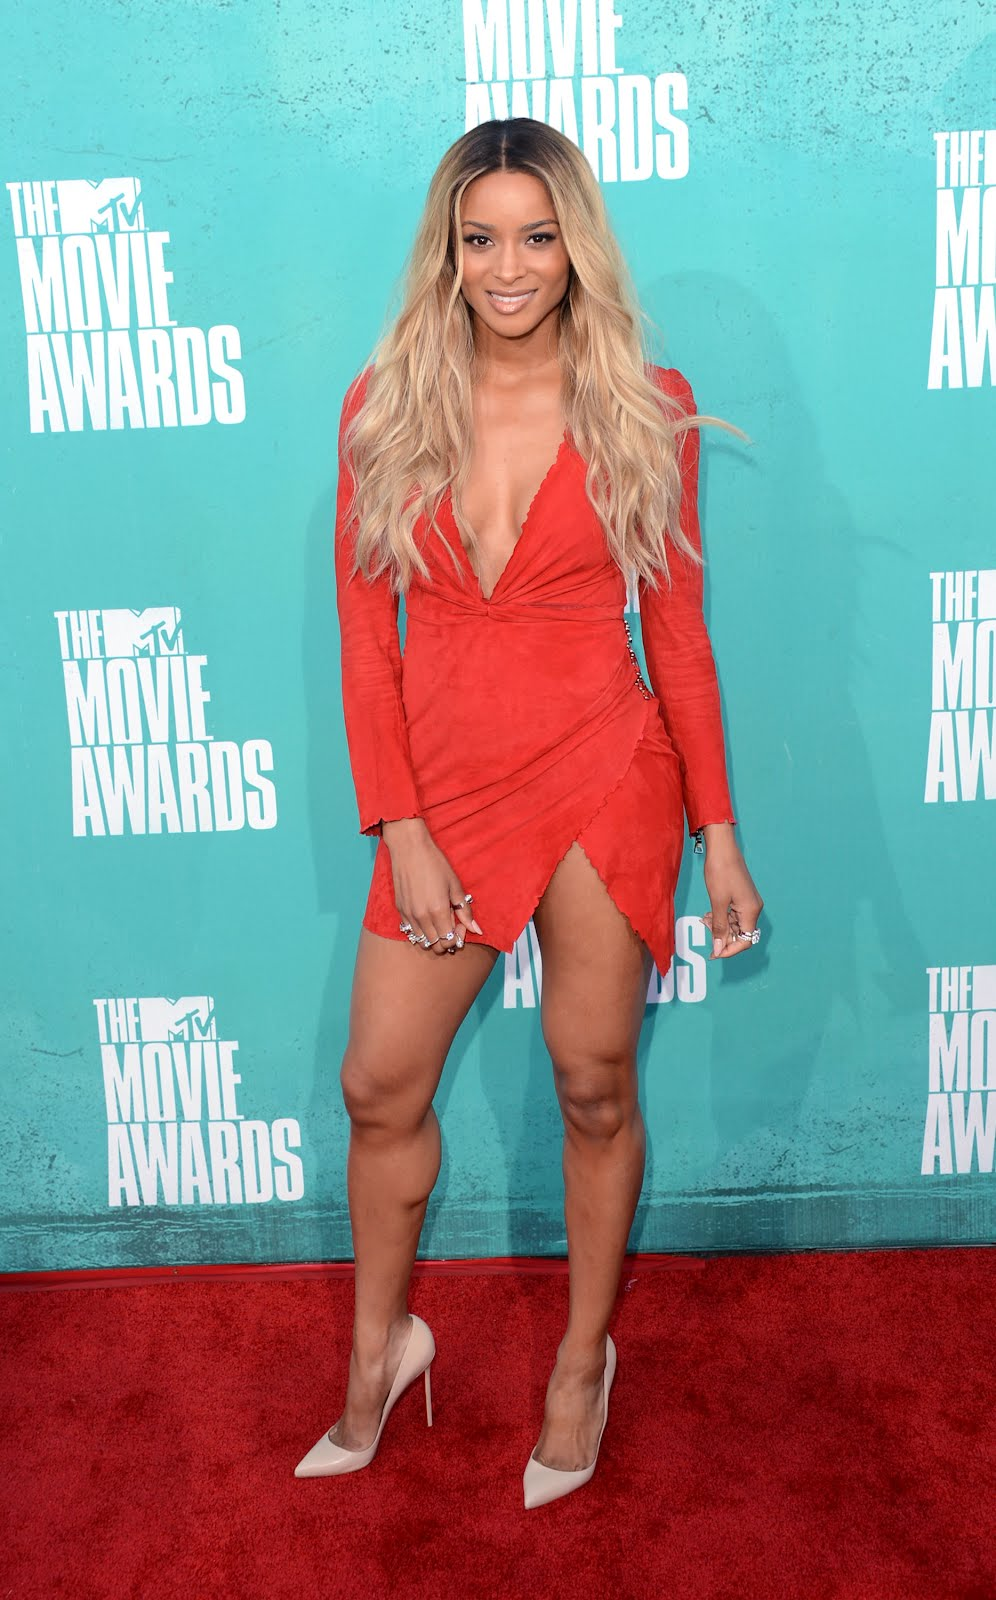 Cleavage Ciara nudes (88 foto and video), Sexy, Leaked, Selfie, swimsuit 2015